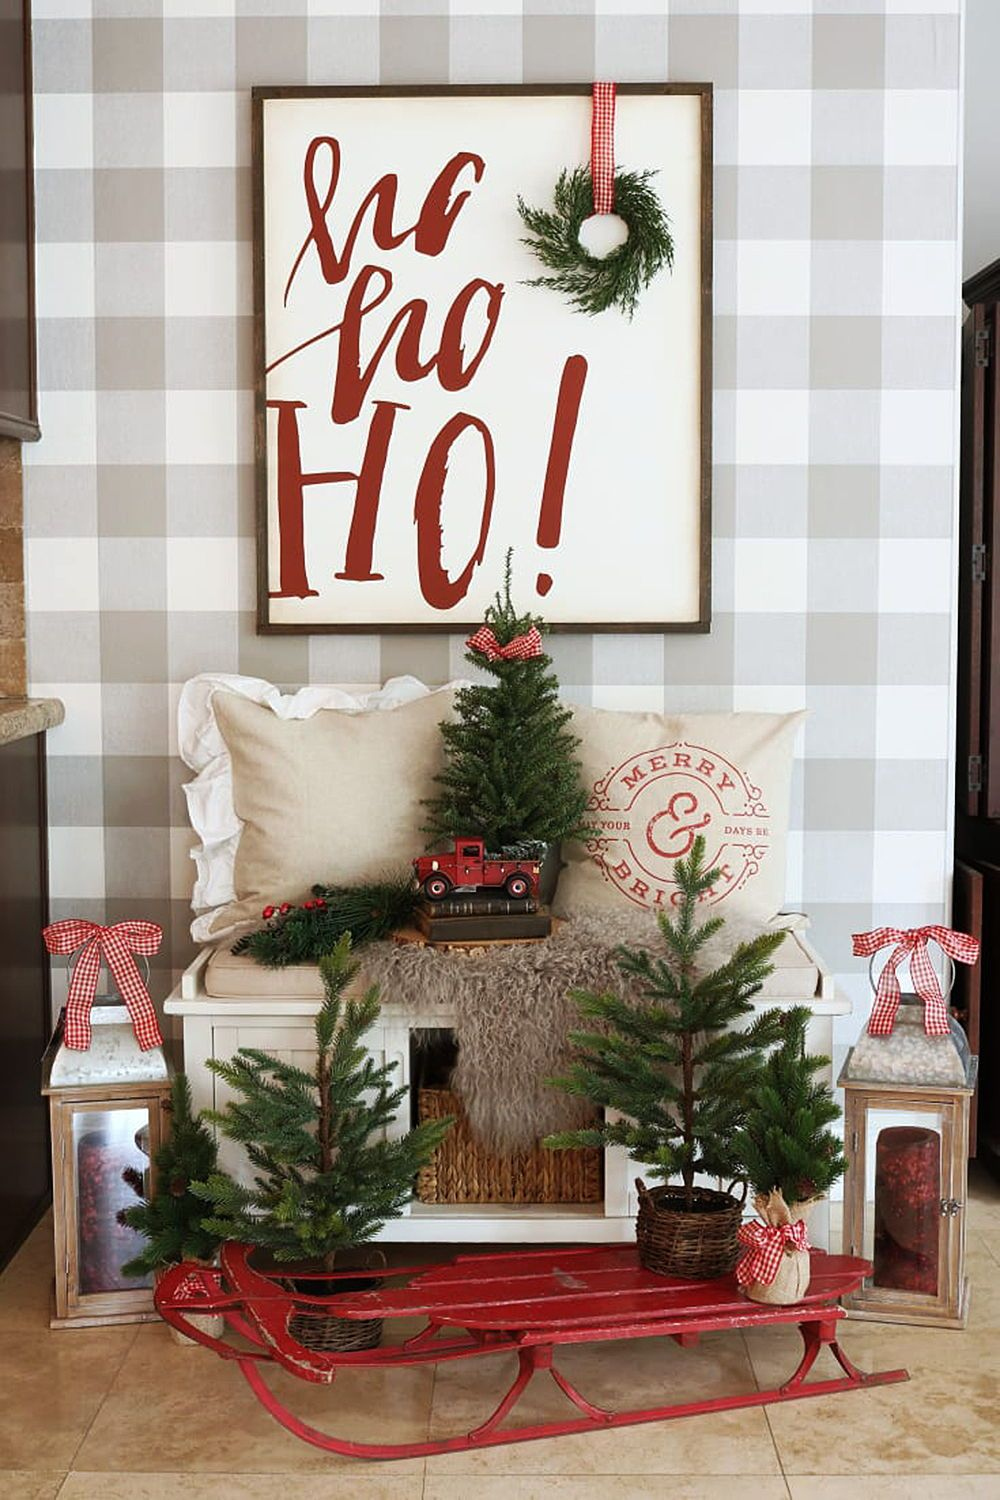 Home Indoor Christmas Decorations Outdoor Christmas Decorations